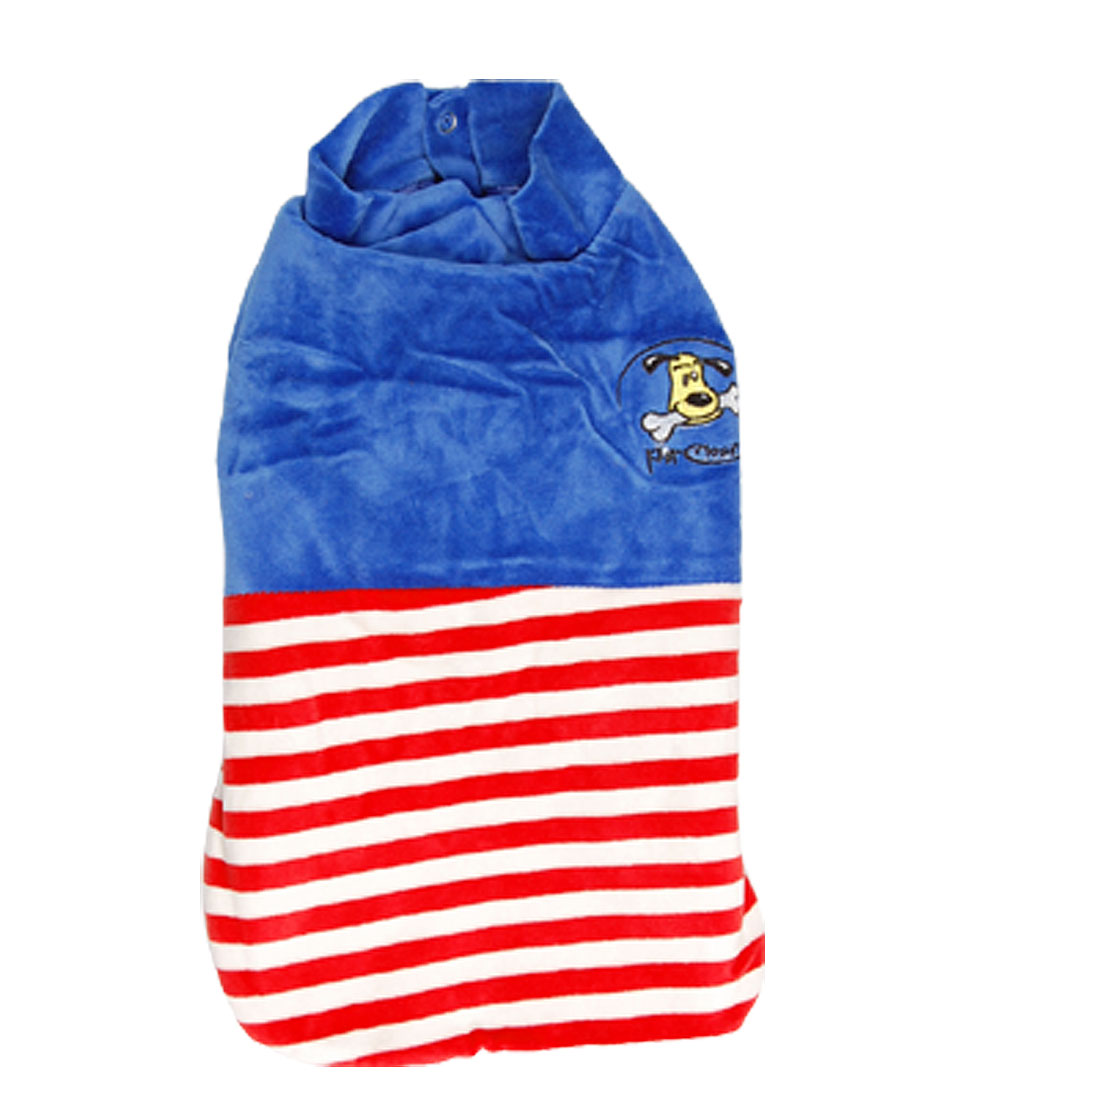 Small Winter Pet Puppy Dog Apparel Blue Velvet Coat Jacket Striped Size S